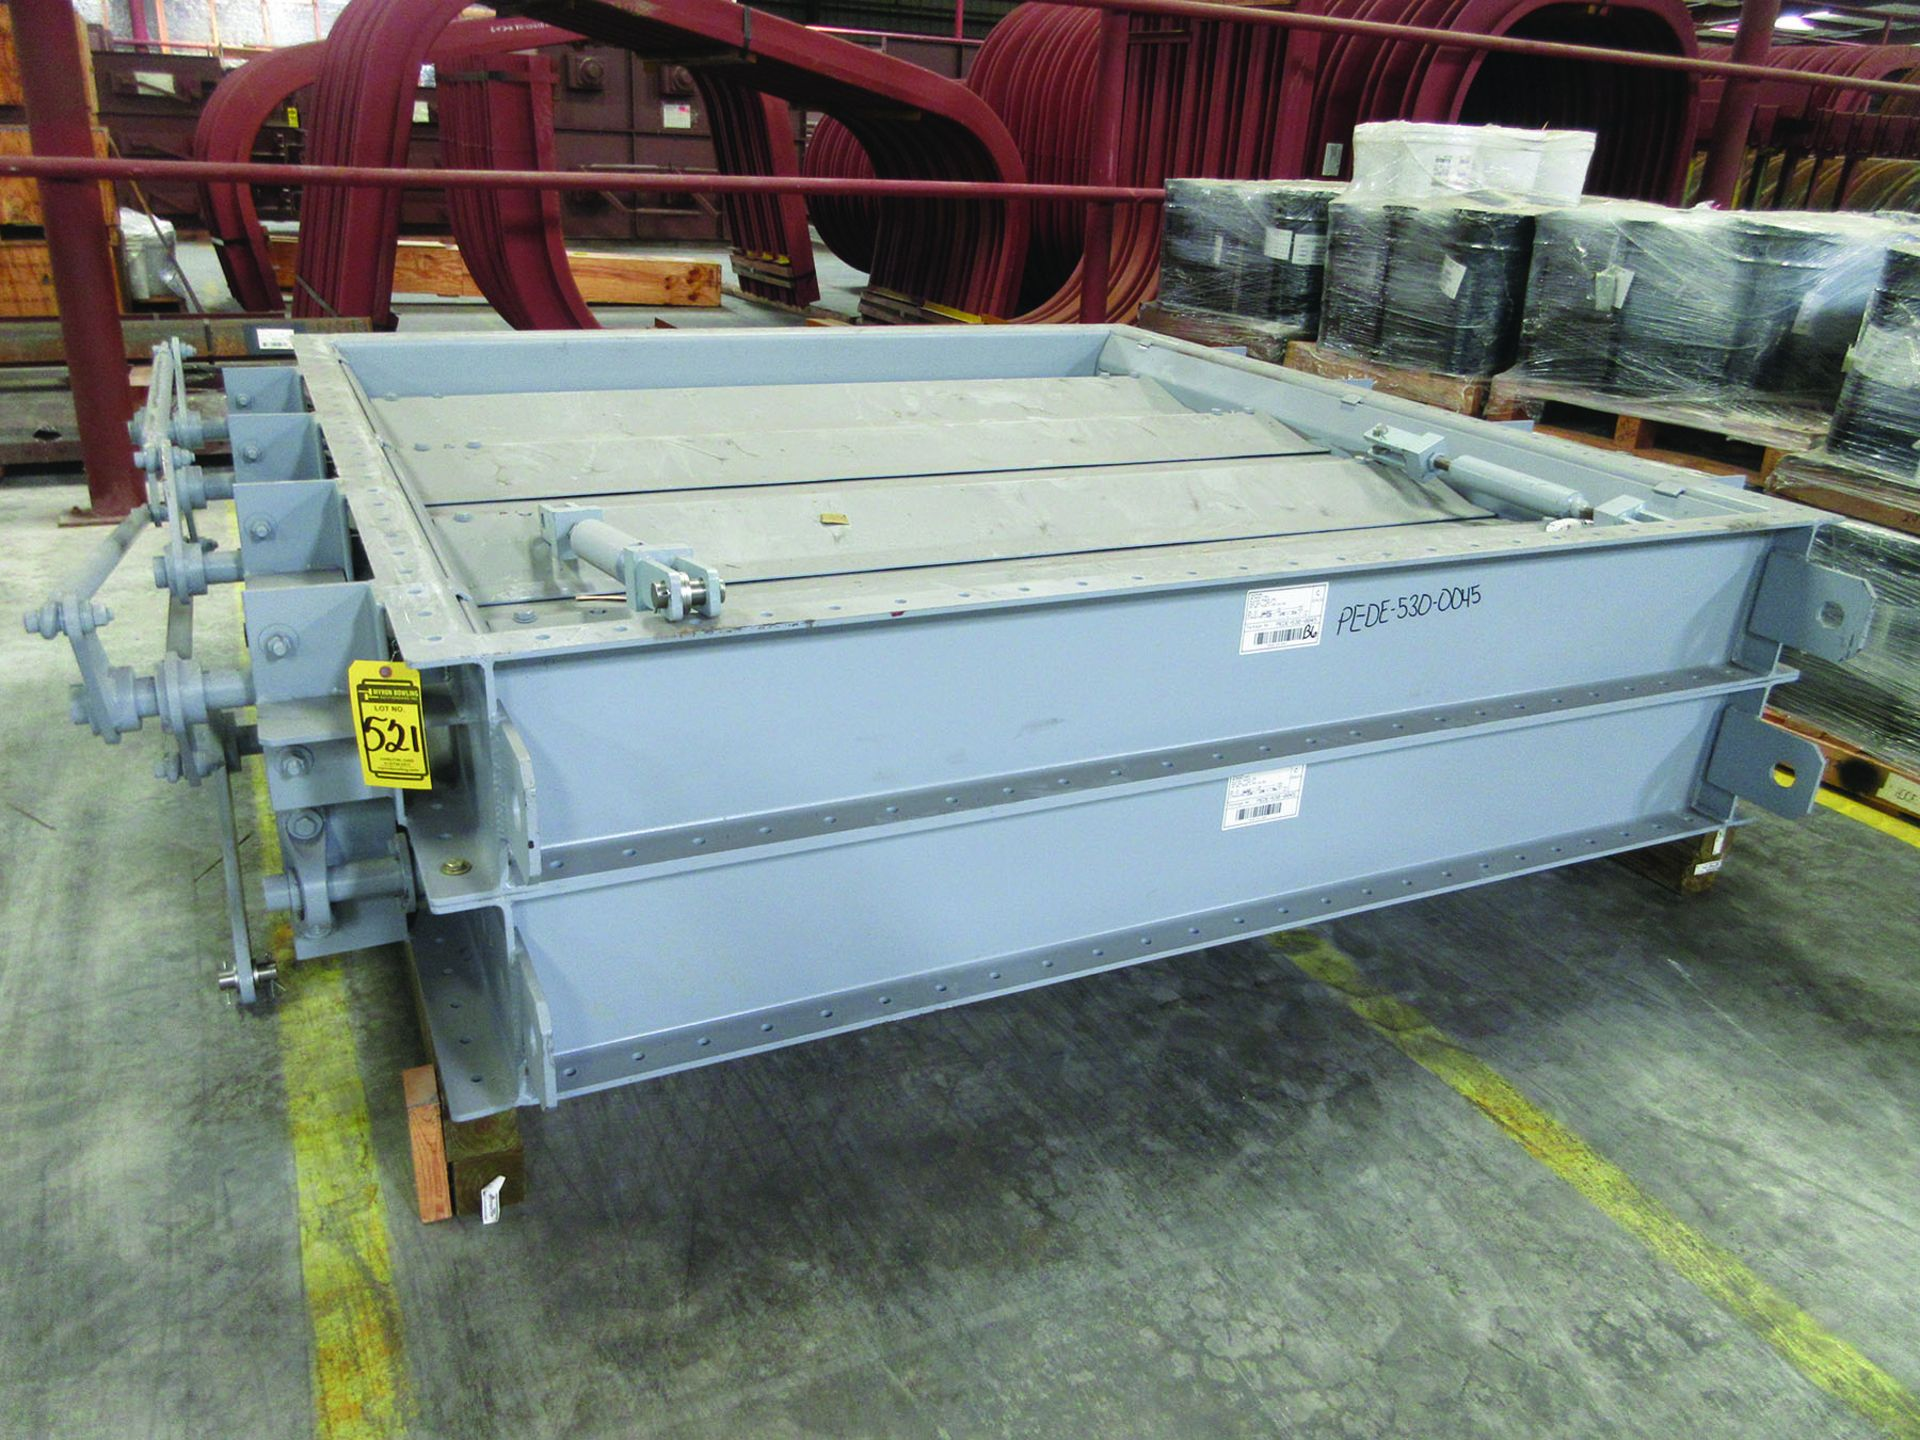 (4) FANS, MODEL 33VR1B-54, WEIGHTS: 4,122 LB. EACH, DIMENSIONS: 132'' X 45'' X 79'', ALSO RODS, - Image 4 of 10